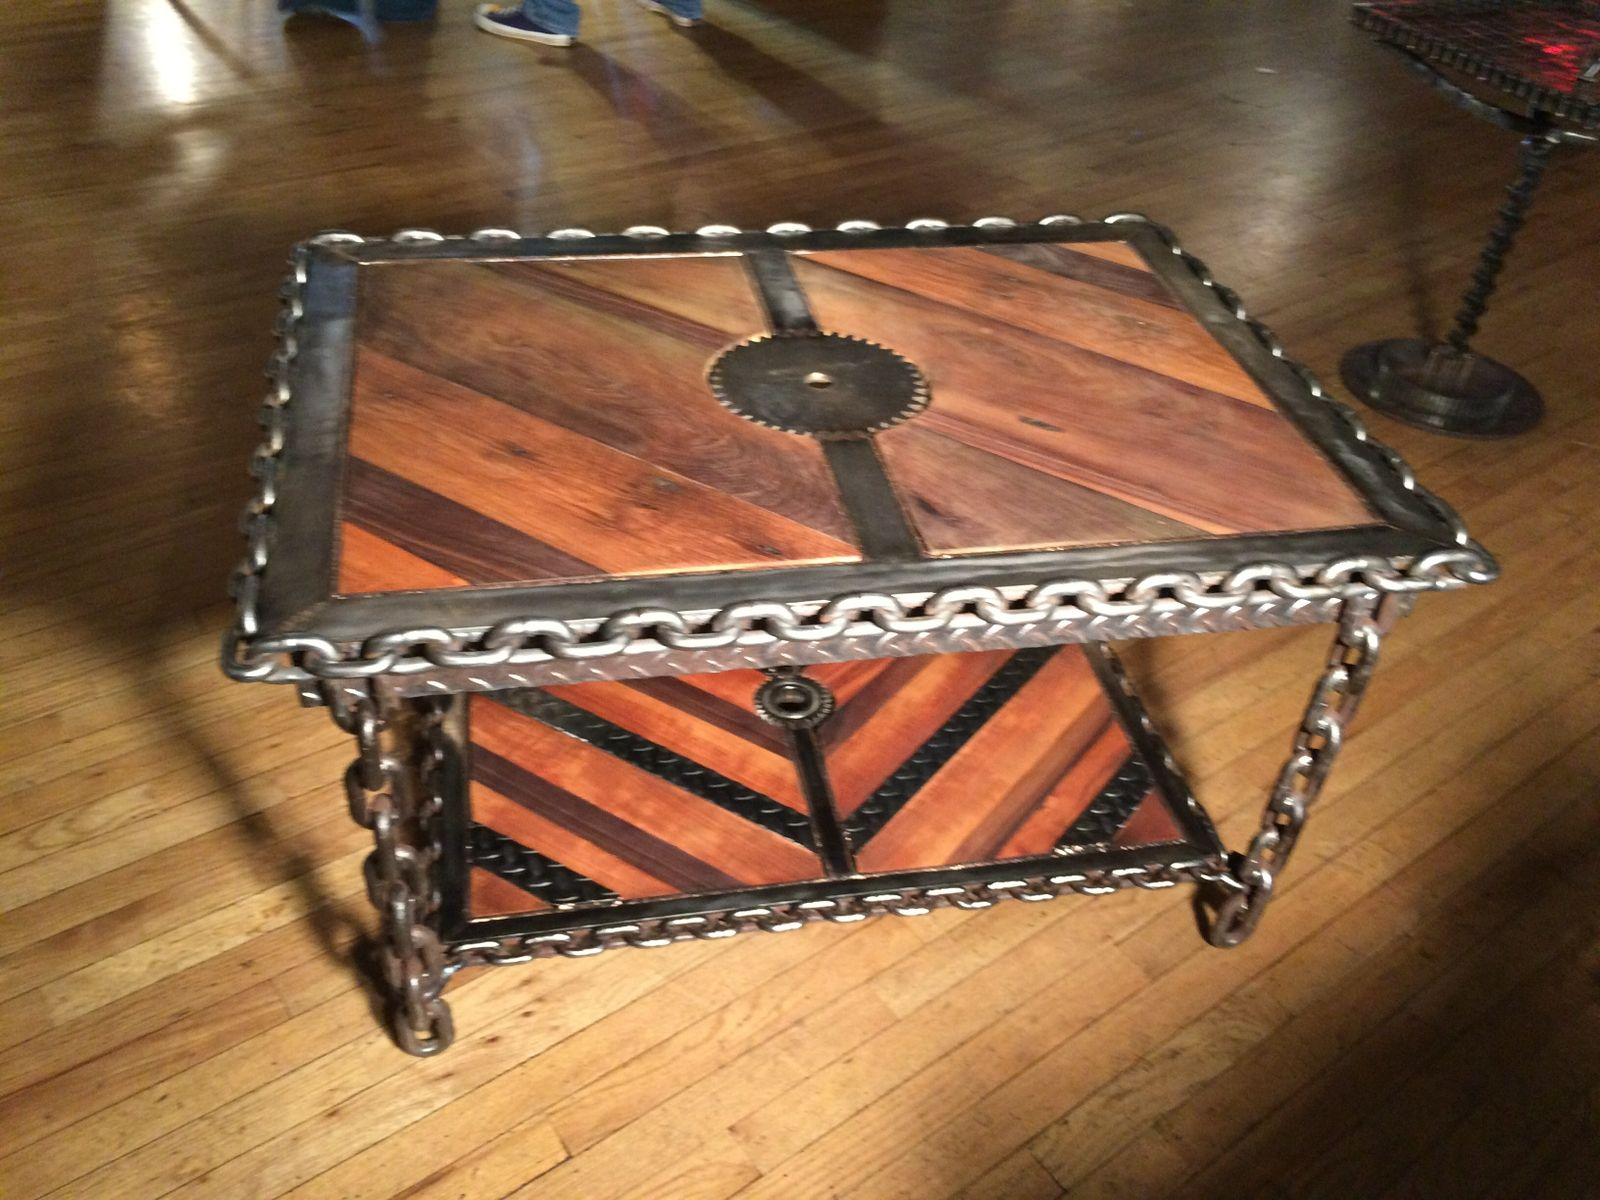 Buy A Hand Made IndustrialSteampunk Coffee Table To